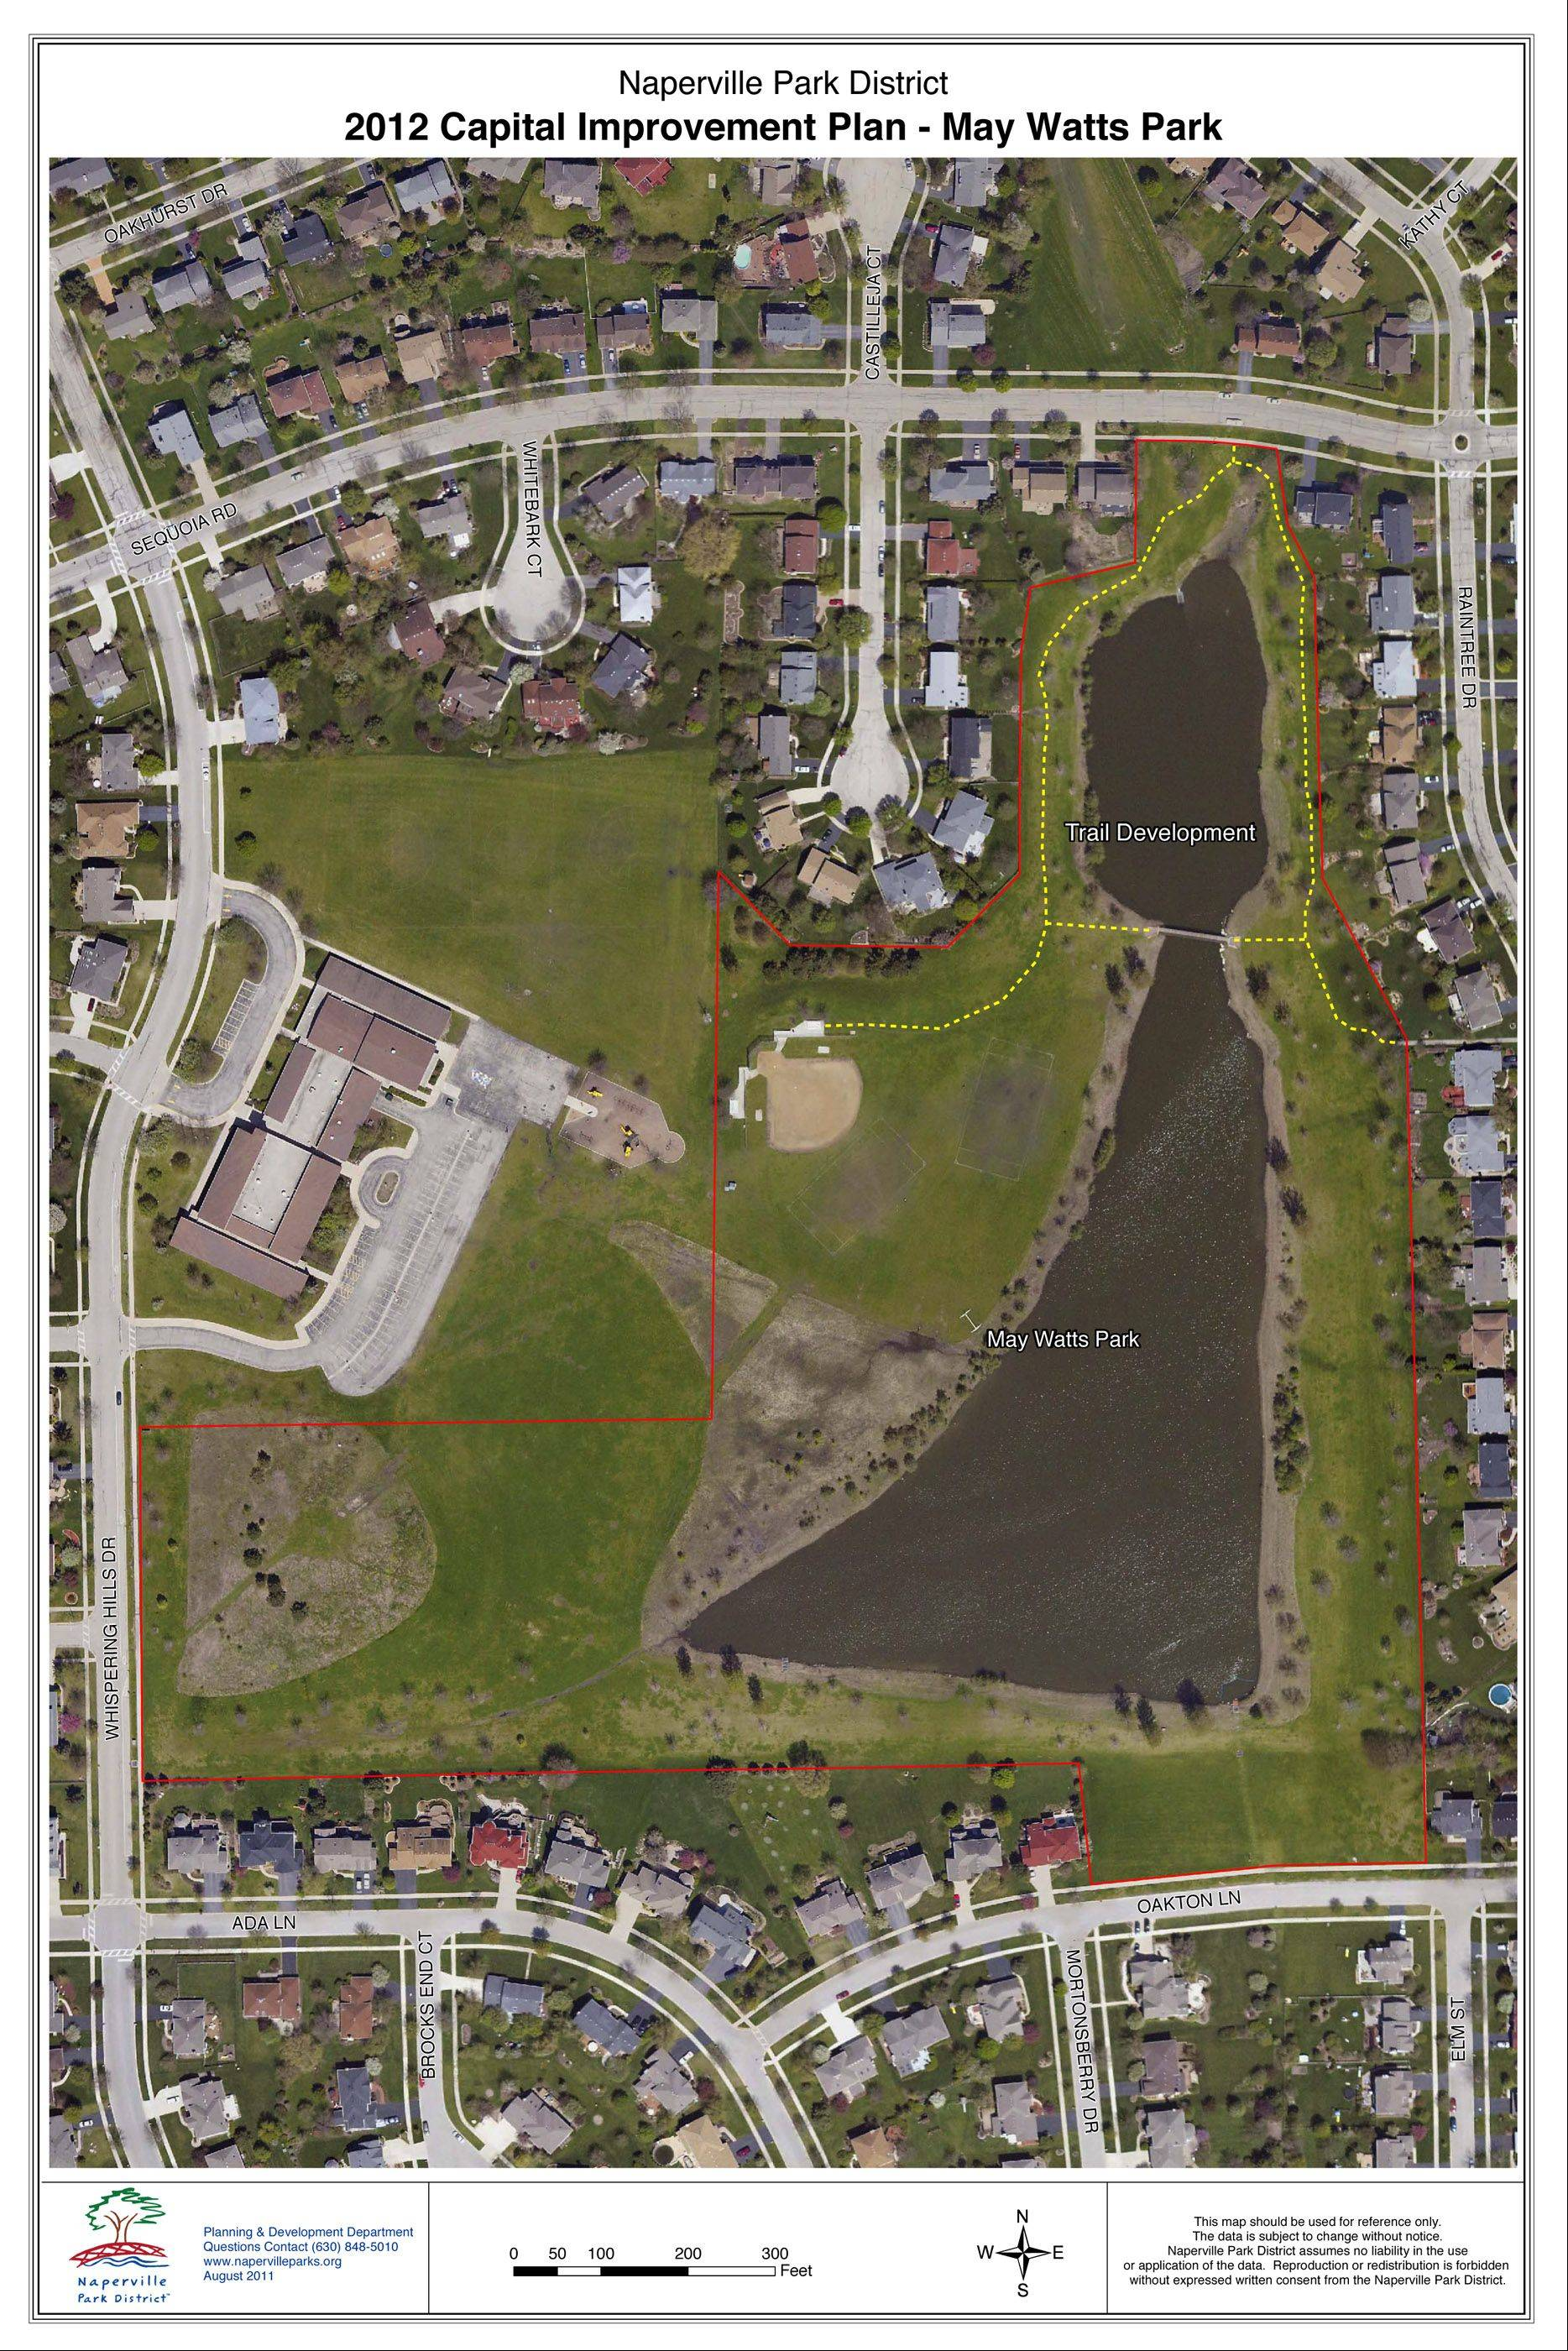 Several residents who live near the retention pond at May Watts Park oppose plans for a proposed walking trail.